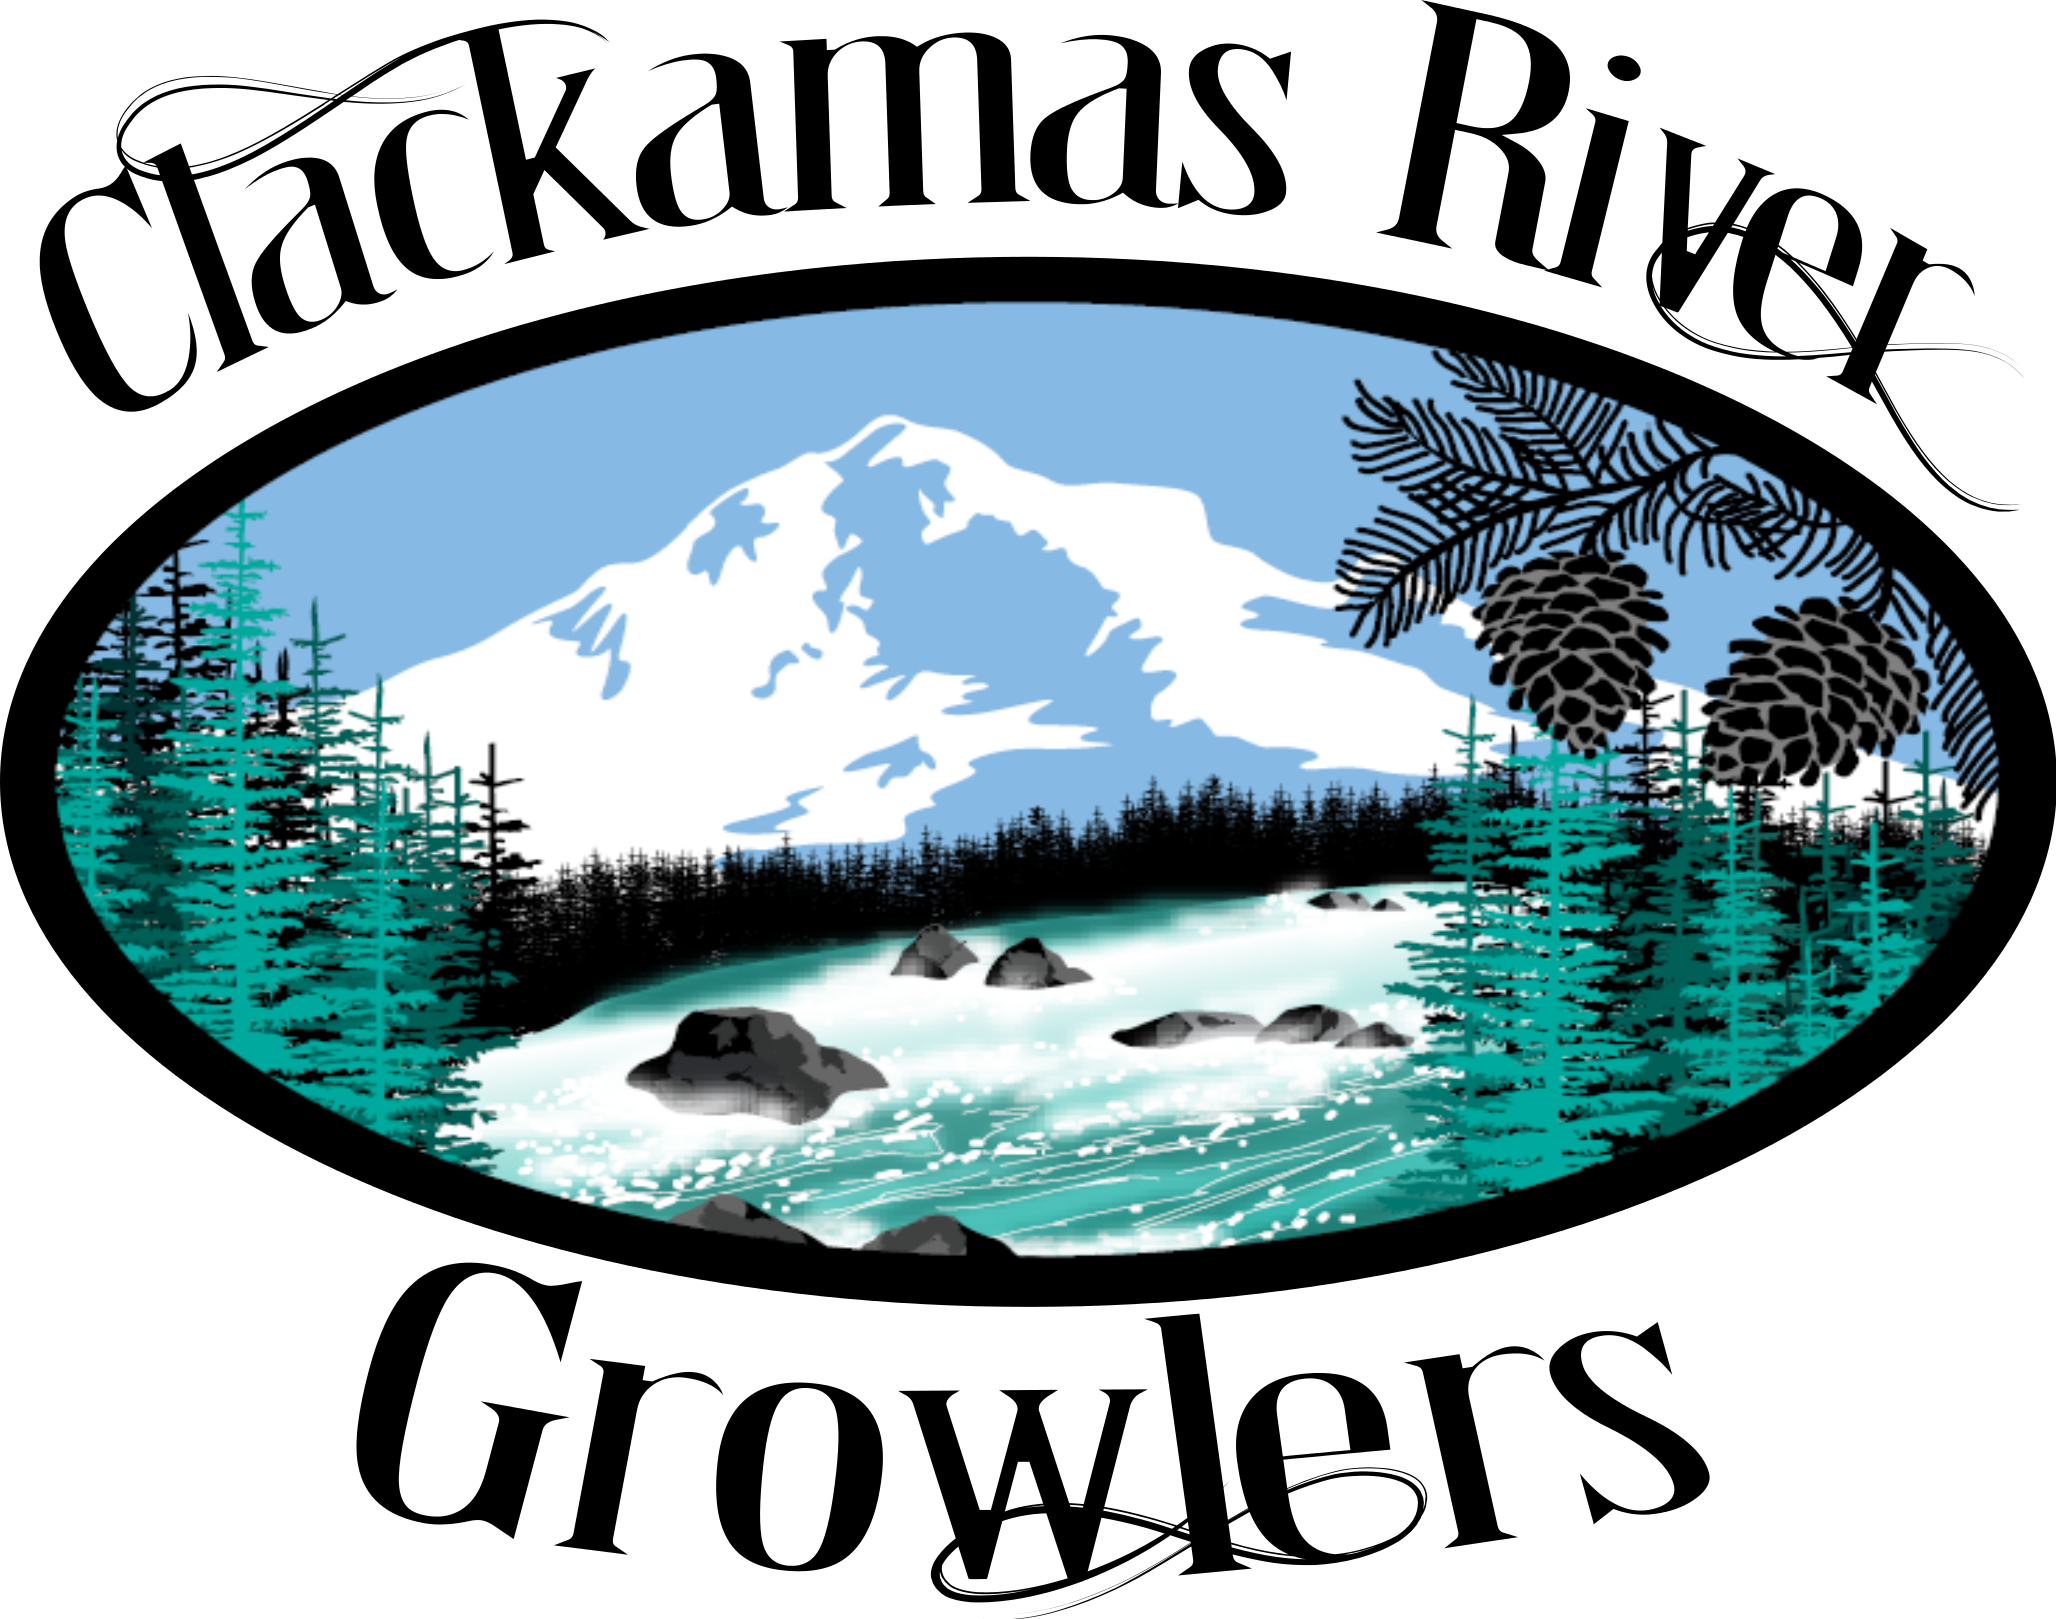 Clackamas River Growlers